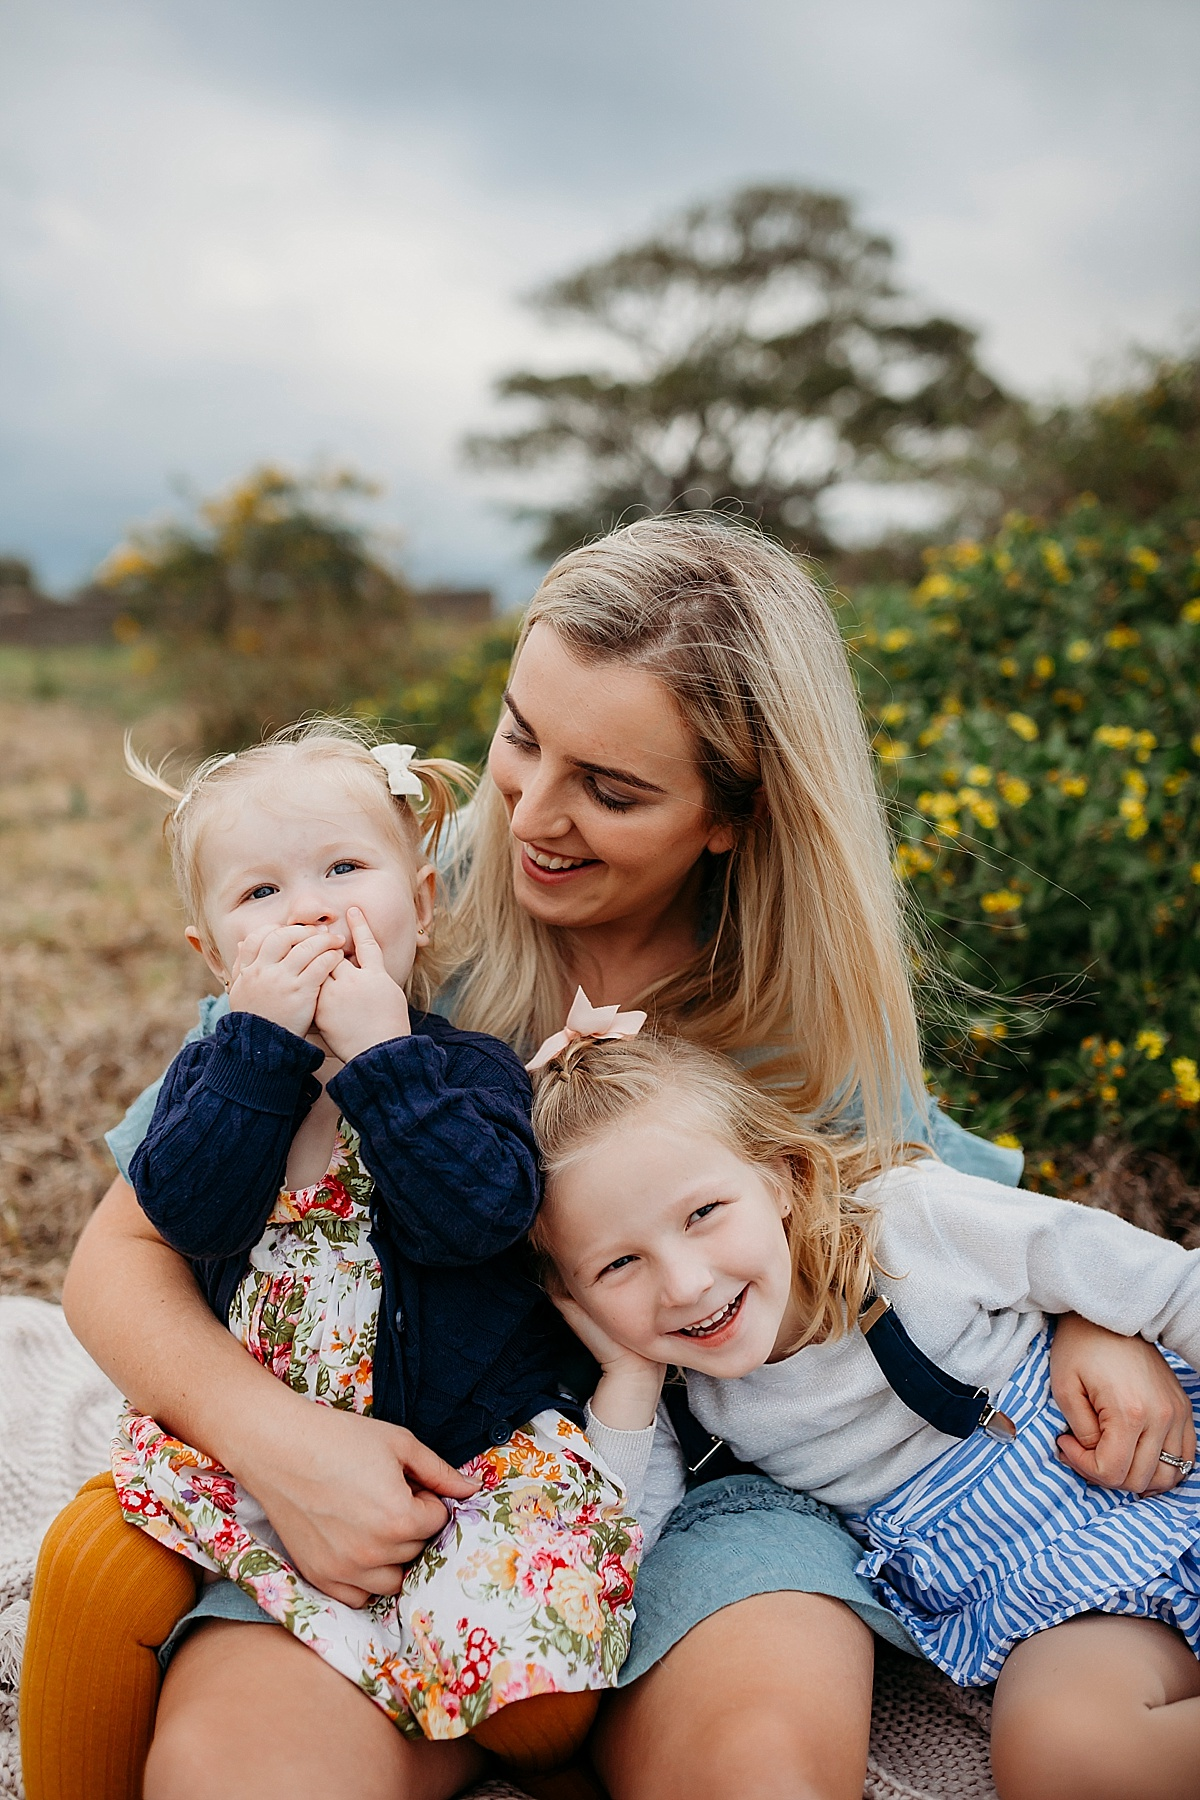 Mum laughing with two little girls